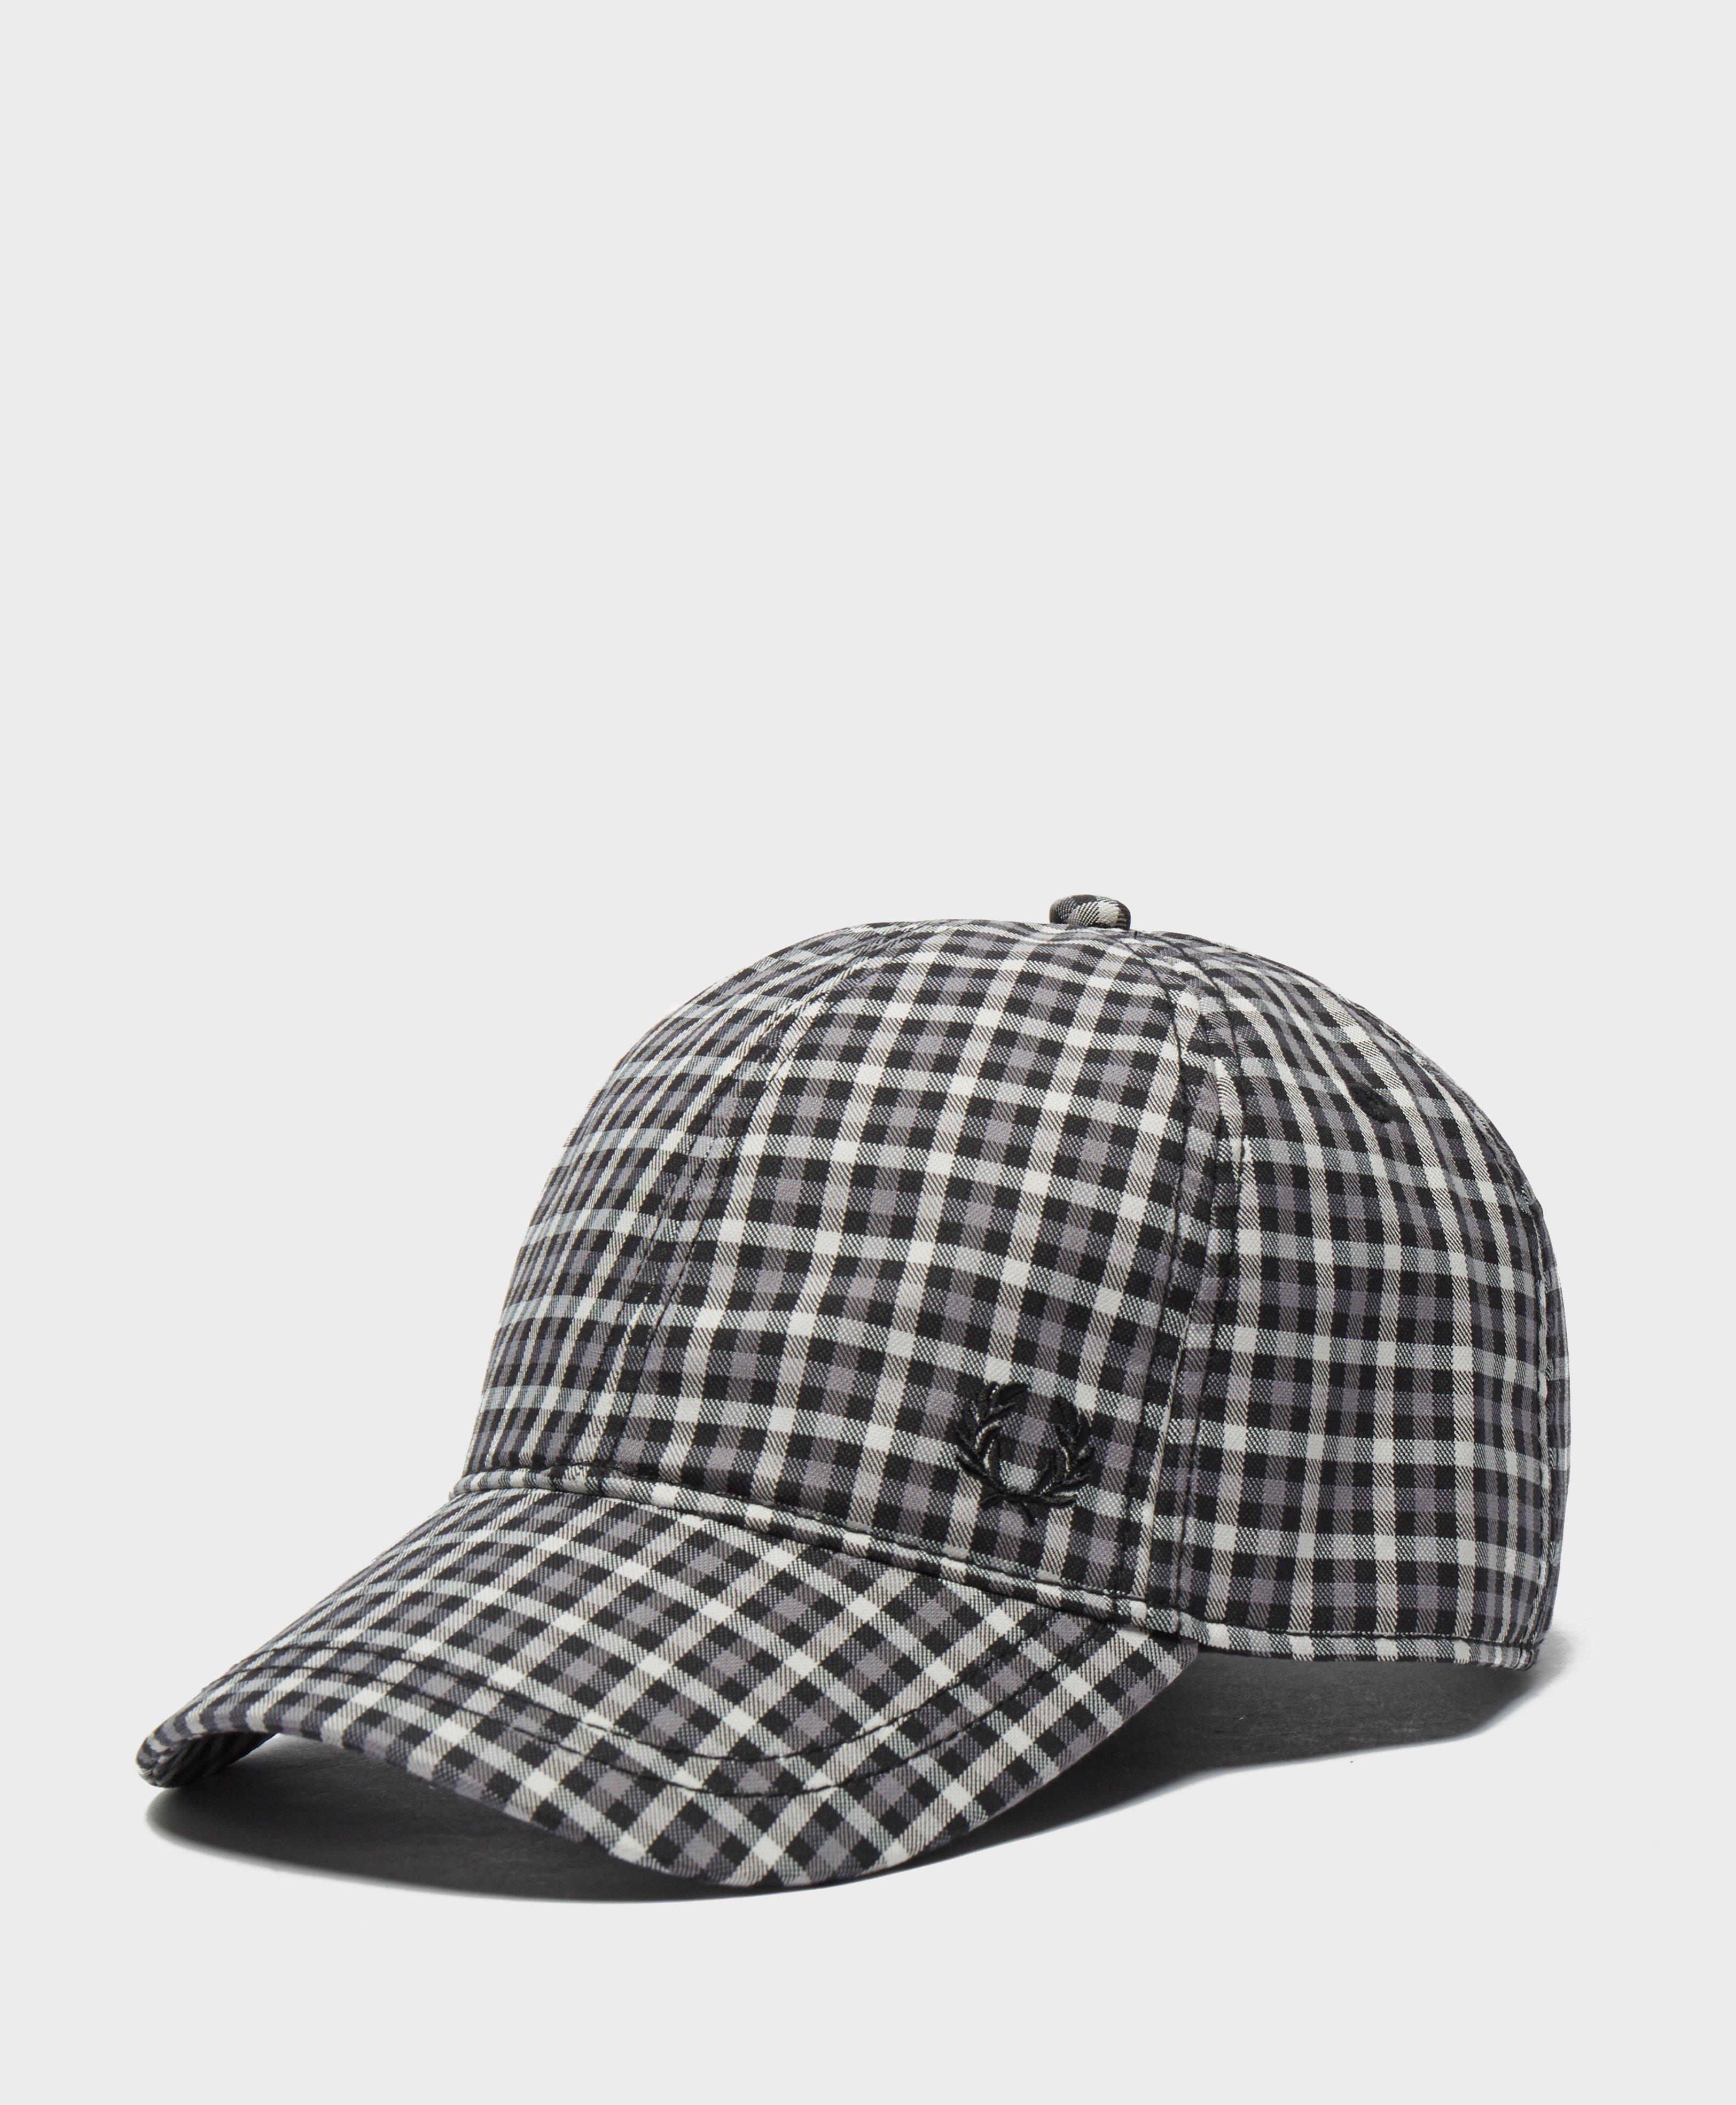 0c0554f37ef Fred Perry Crest Check Cap for Men - Lyst